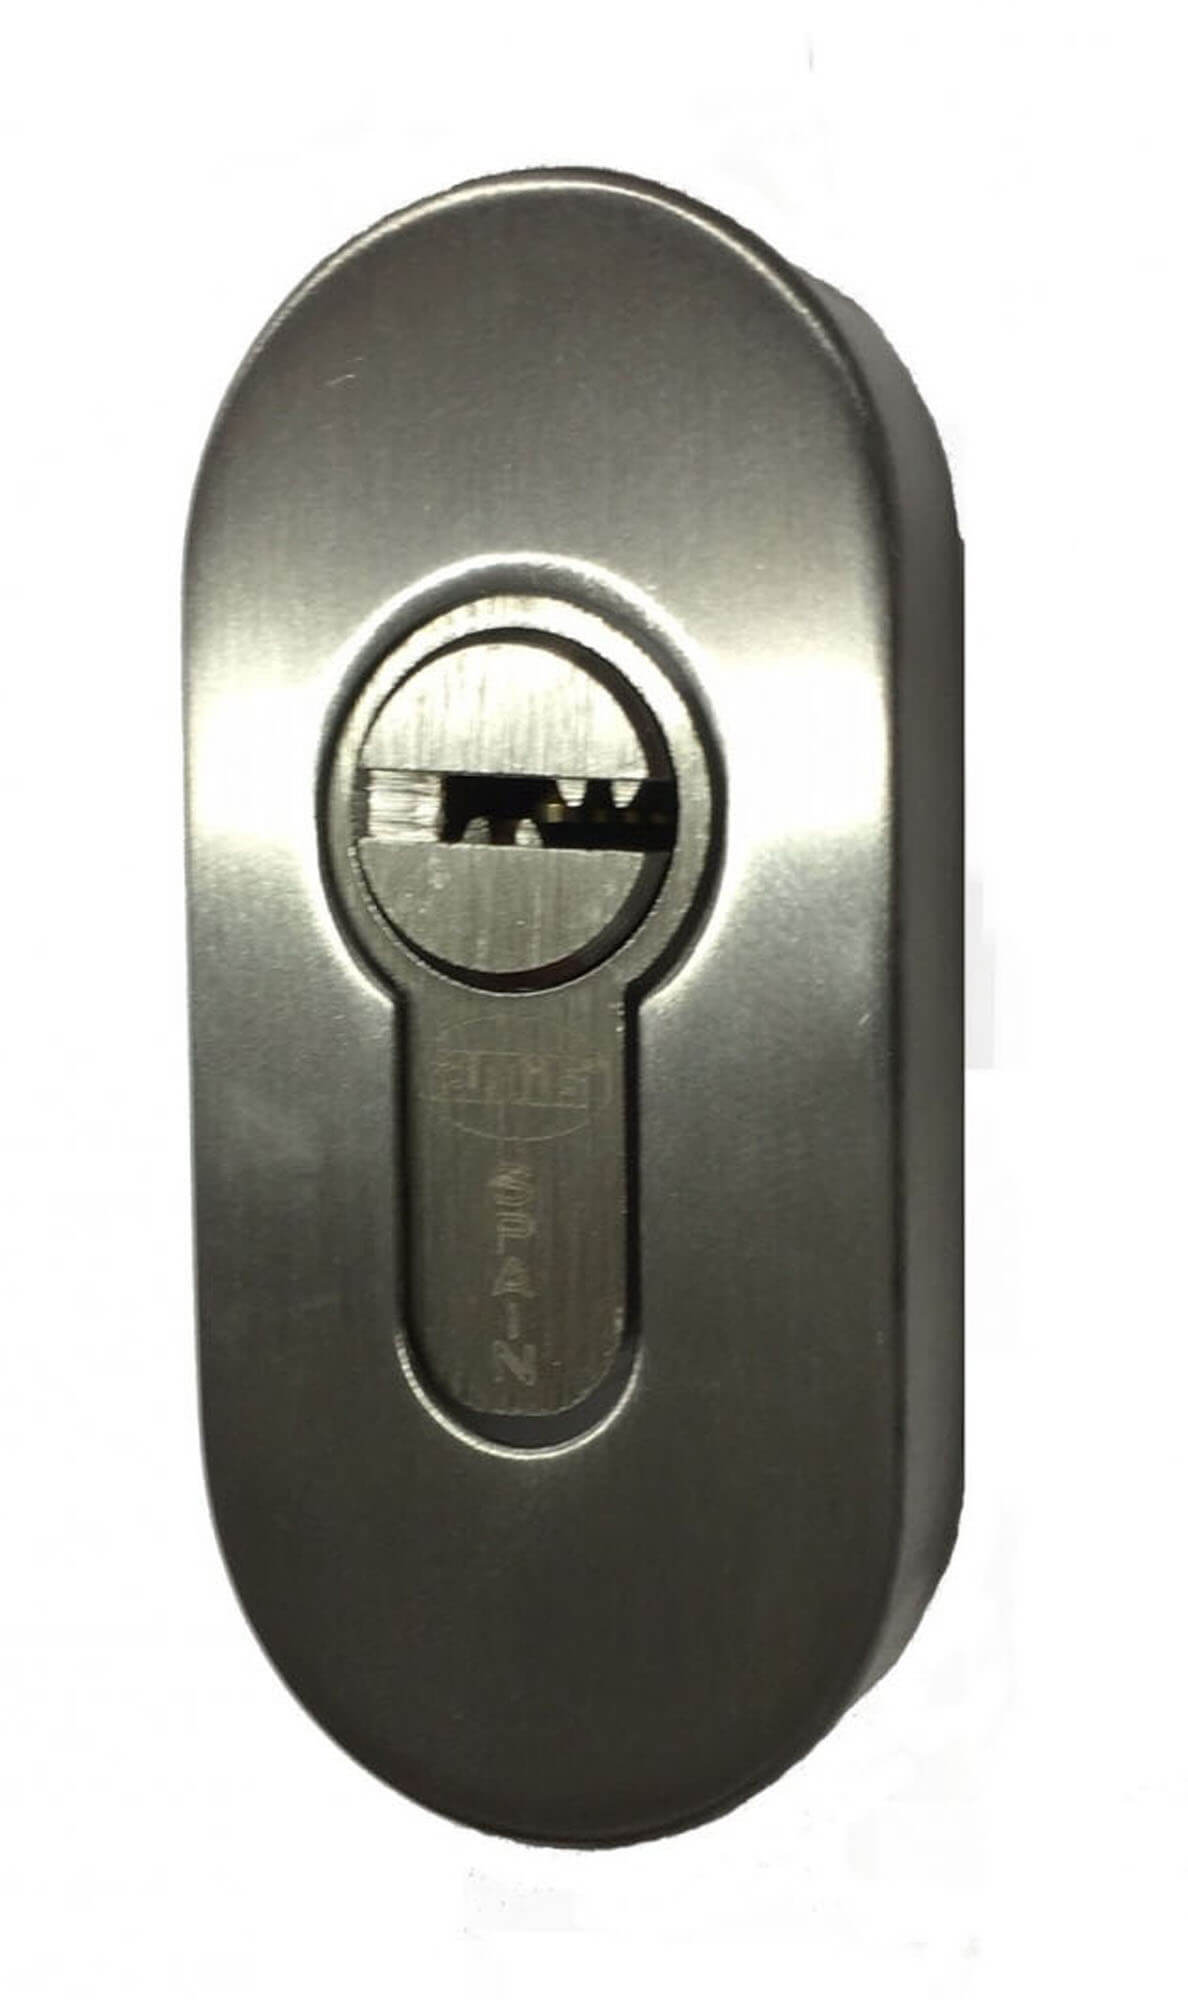 STAINLESS STEEL OVAL KEY ESCUTCHEON.